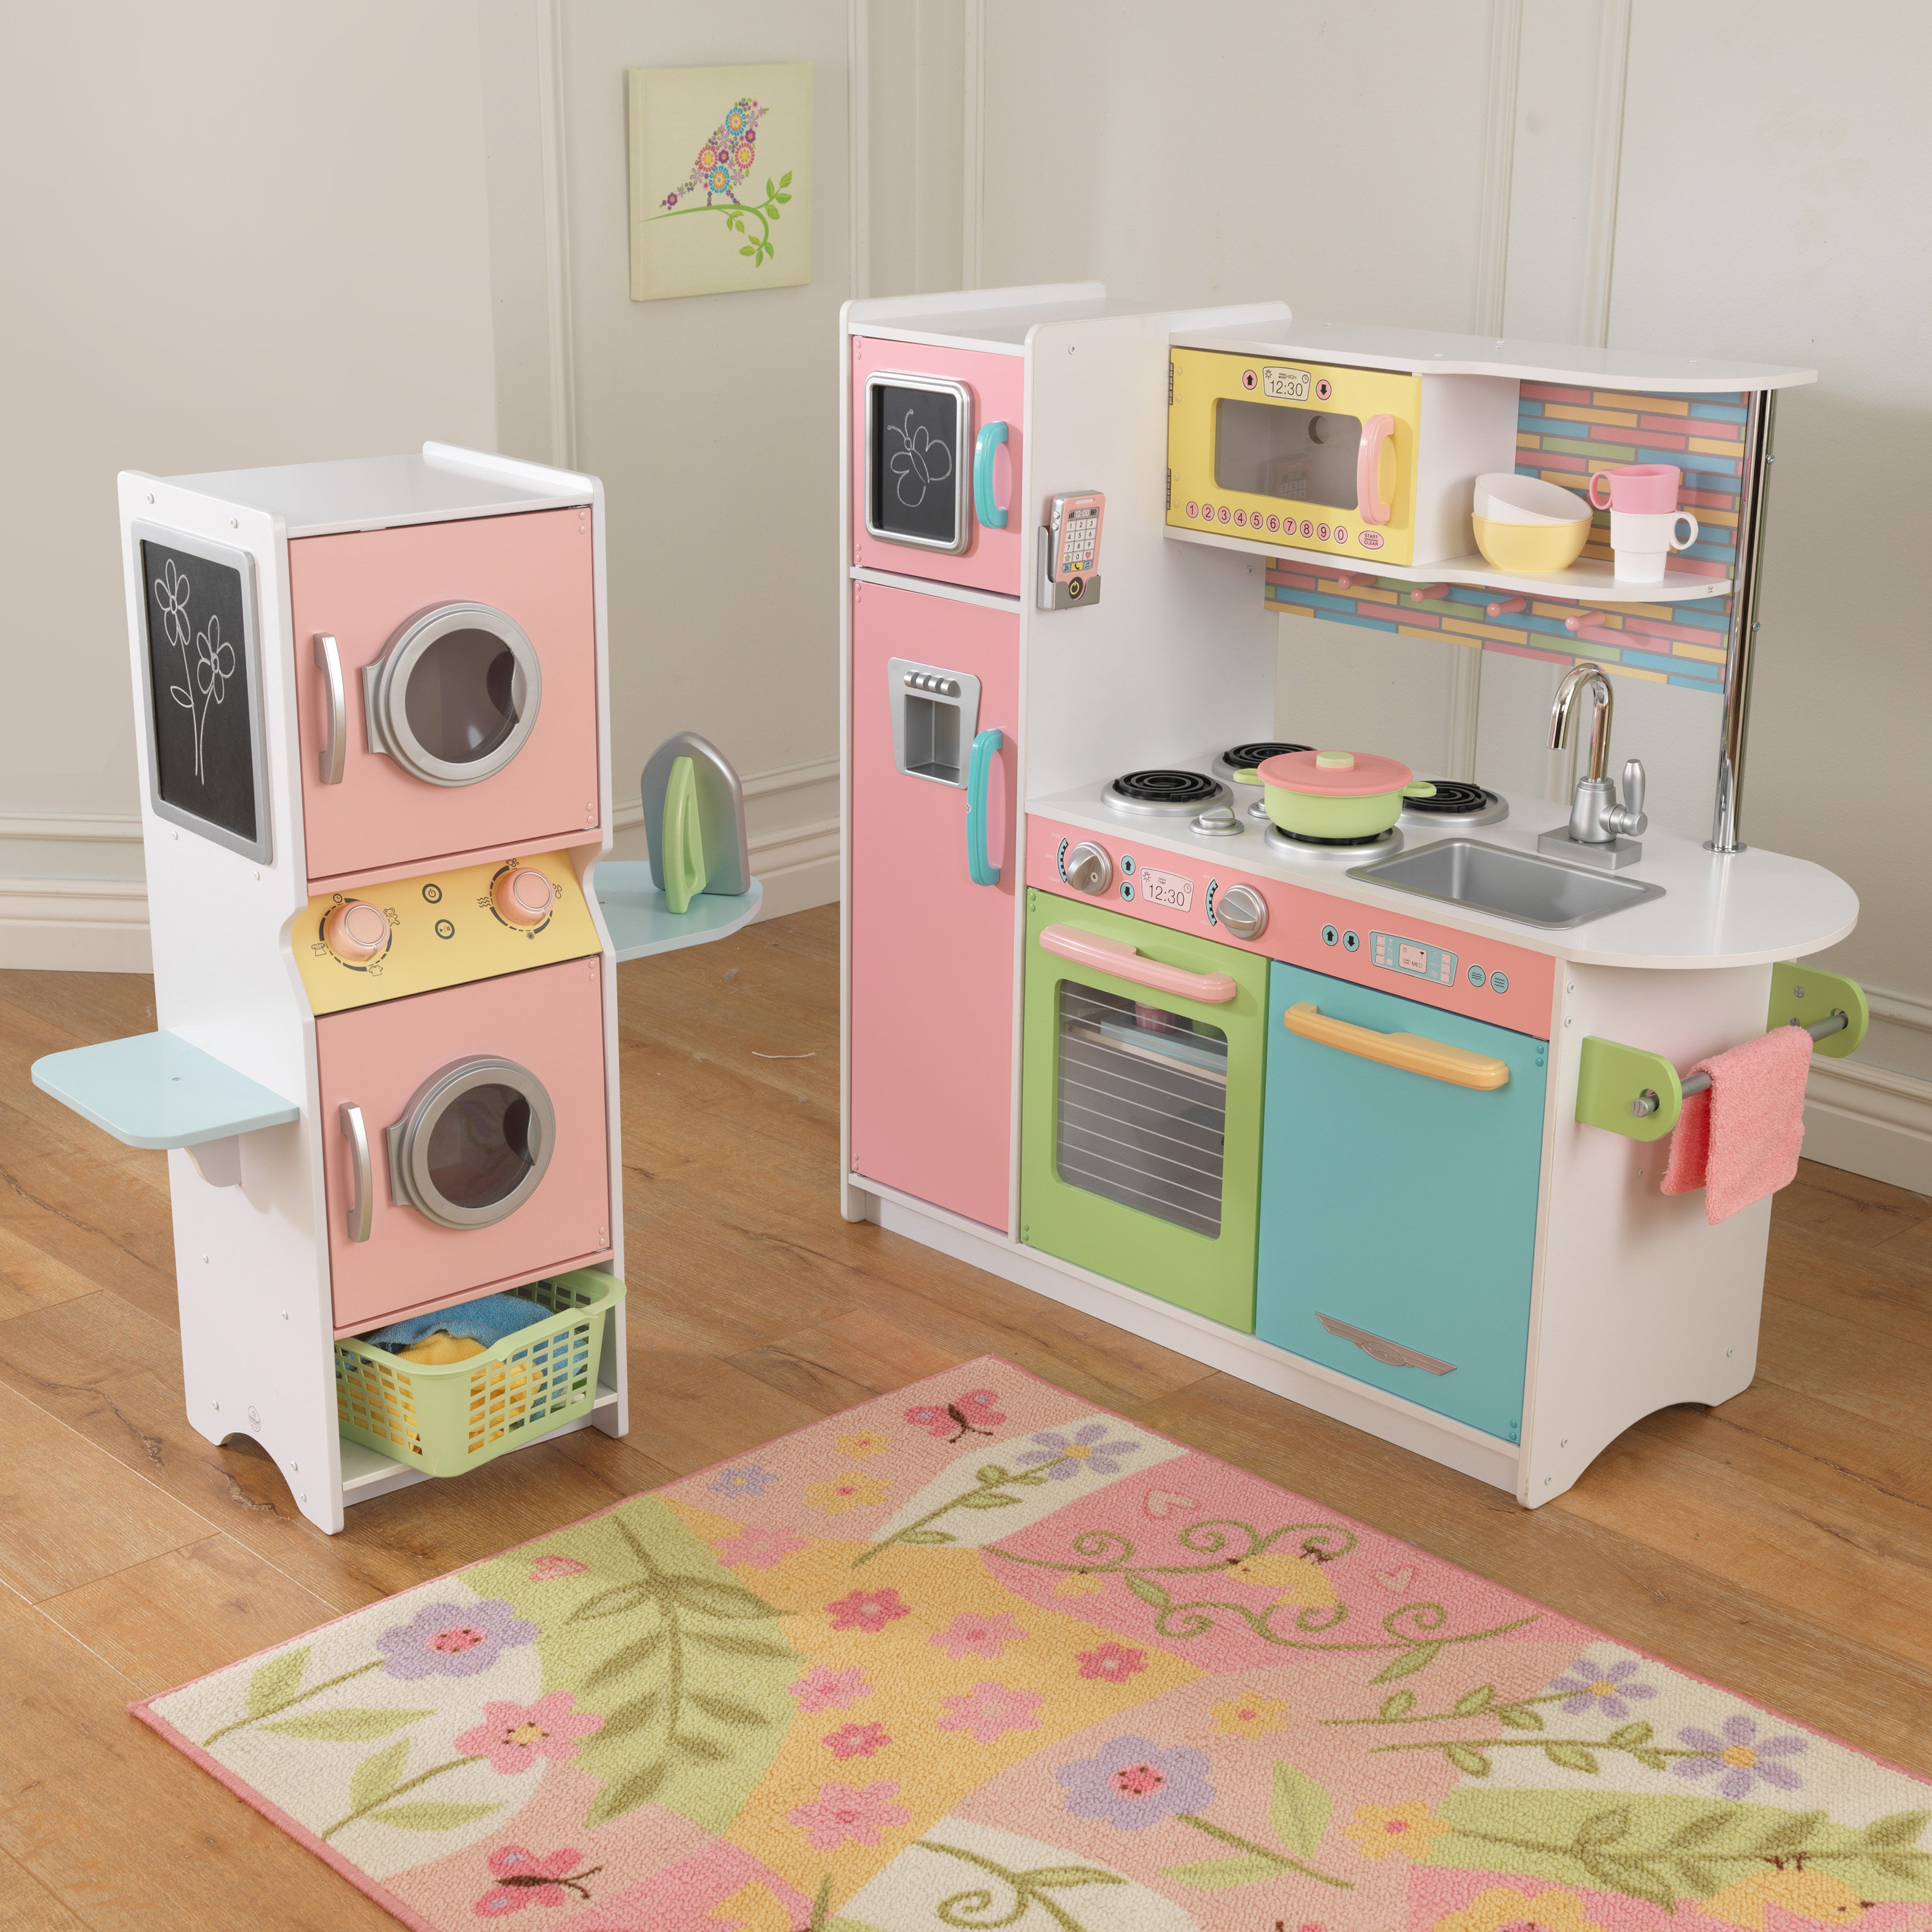 Kidkraft Uptown Pastel Play Kitchen And Laundry Playset Walmart Com